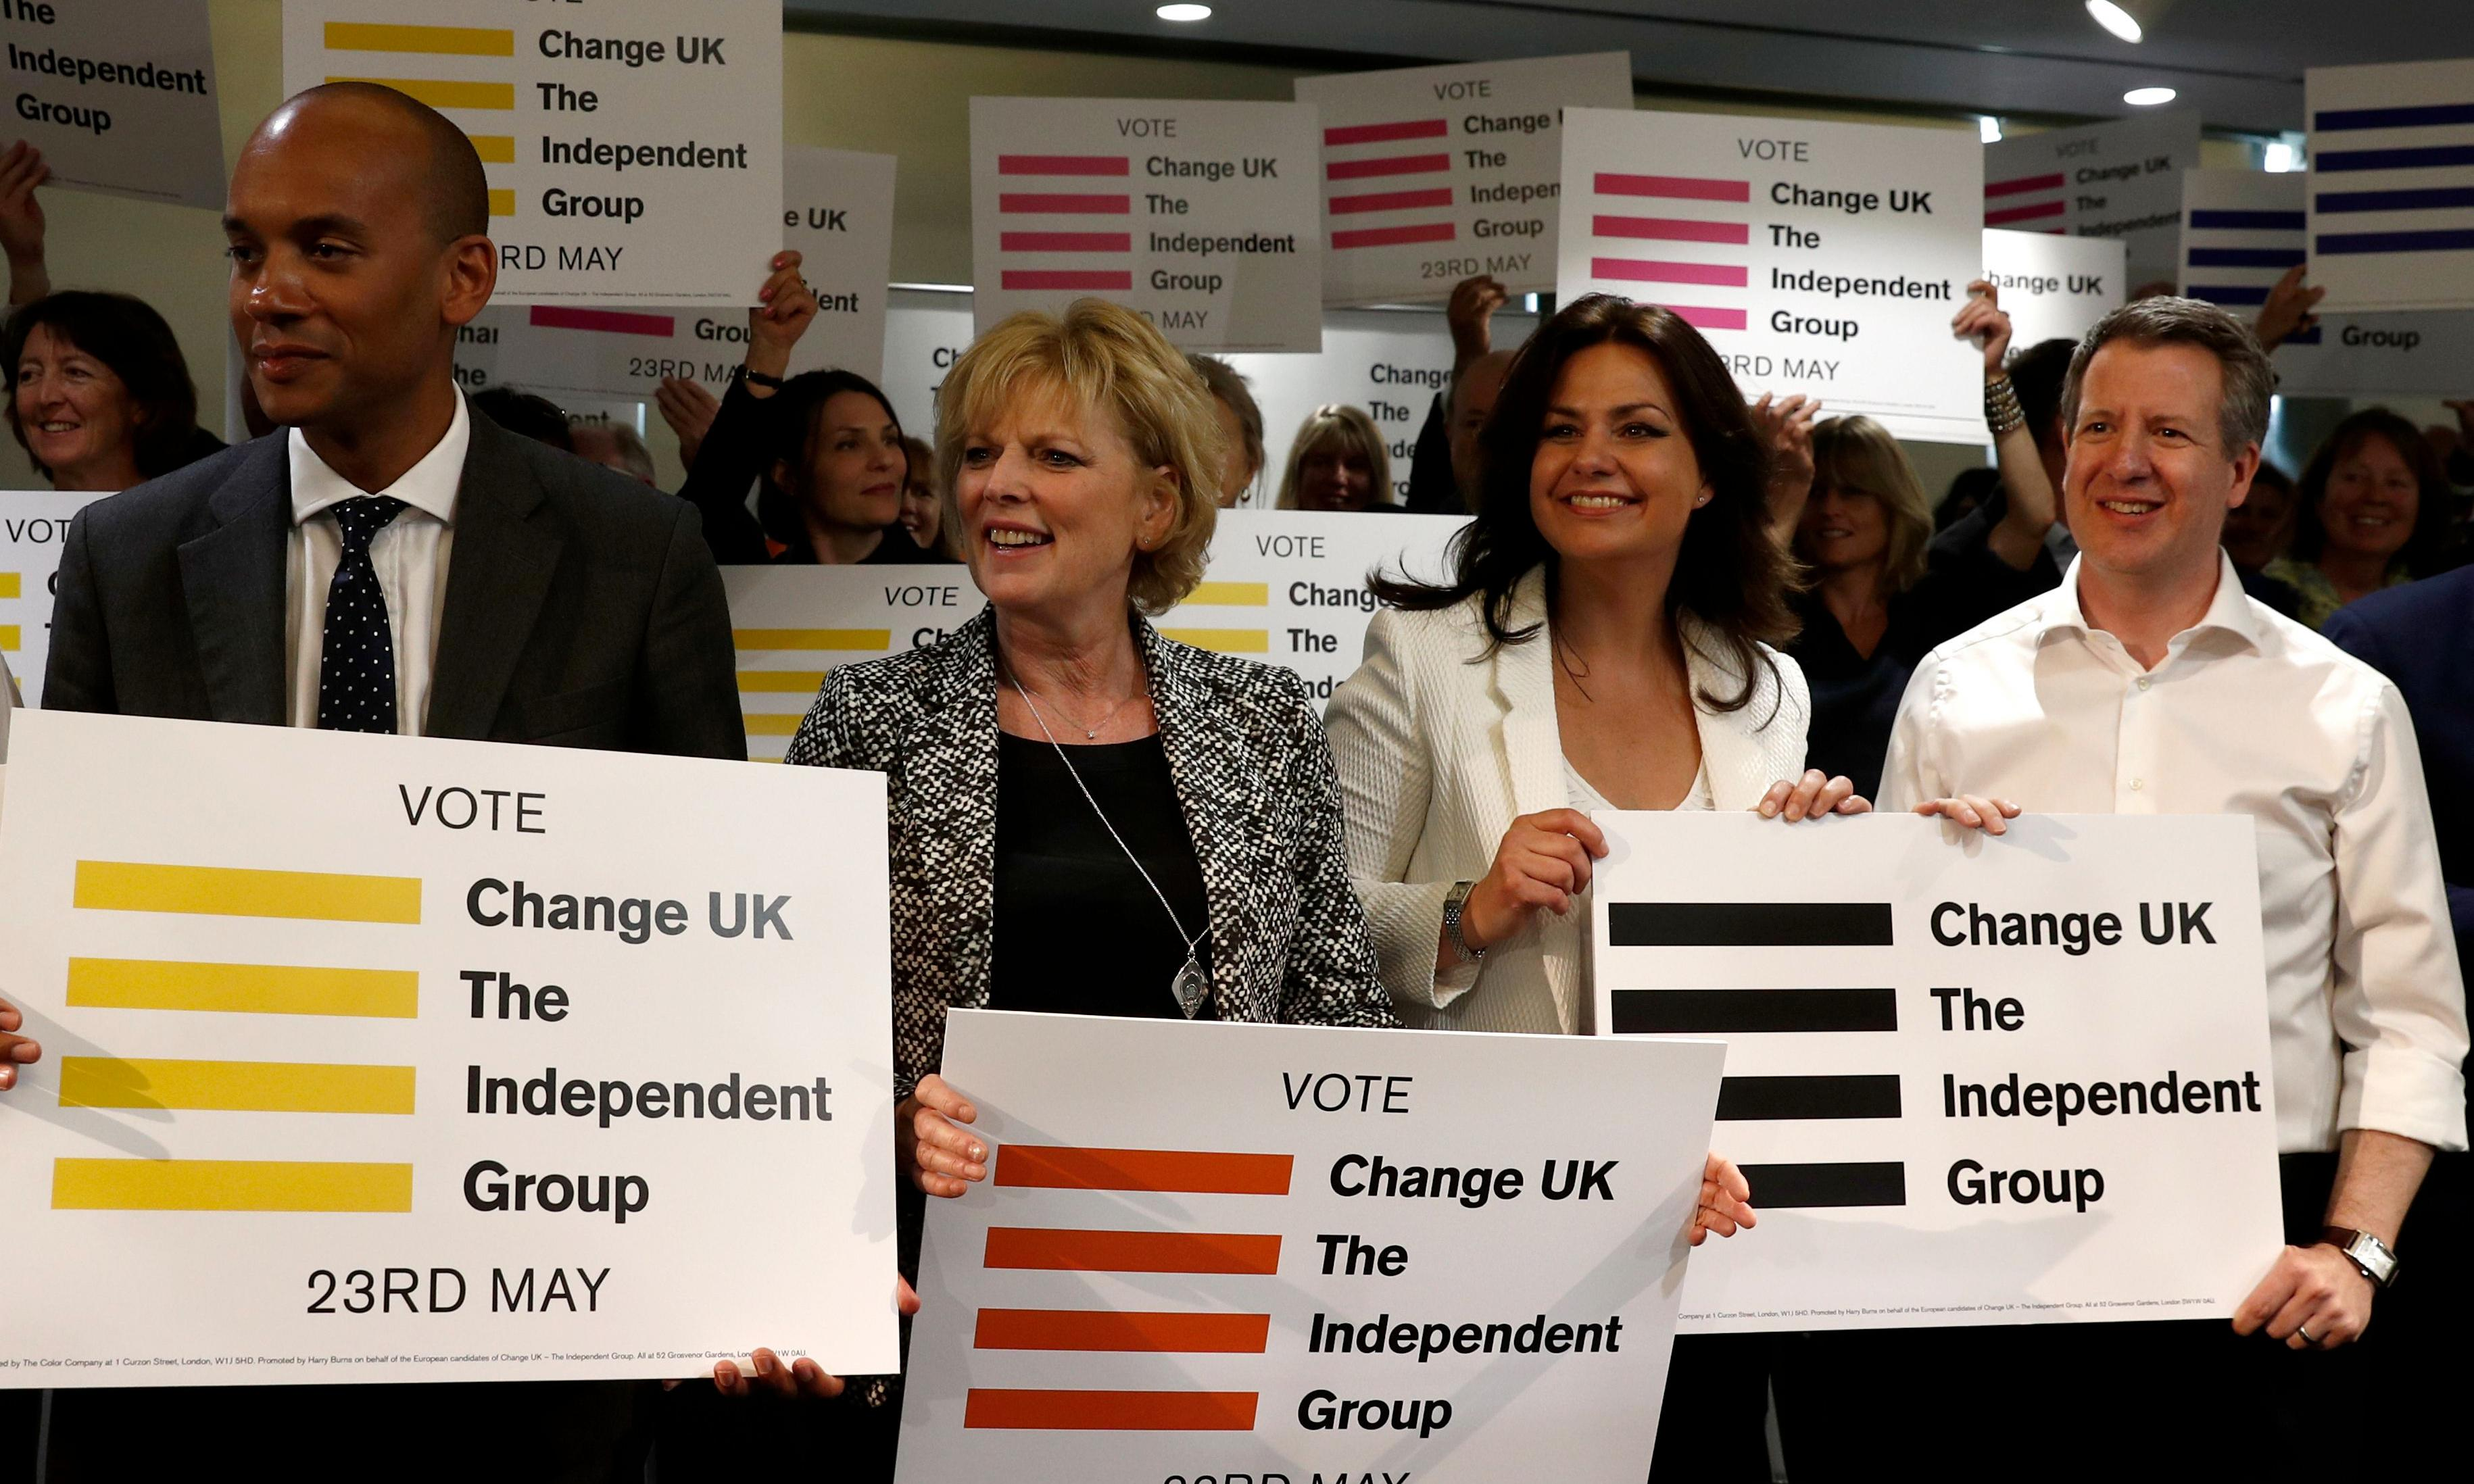 Our Brexit limbo has given us two new parties, but the same old politics